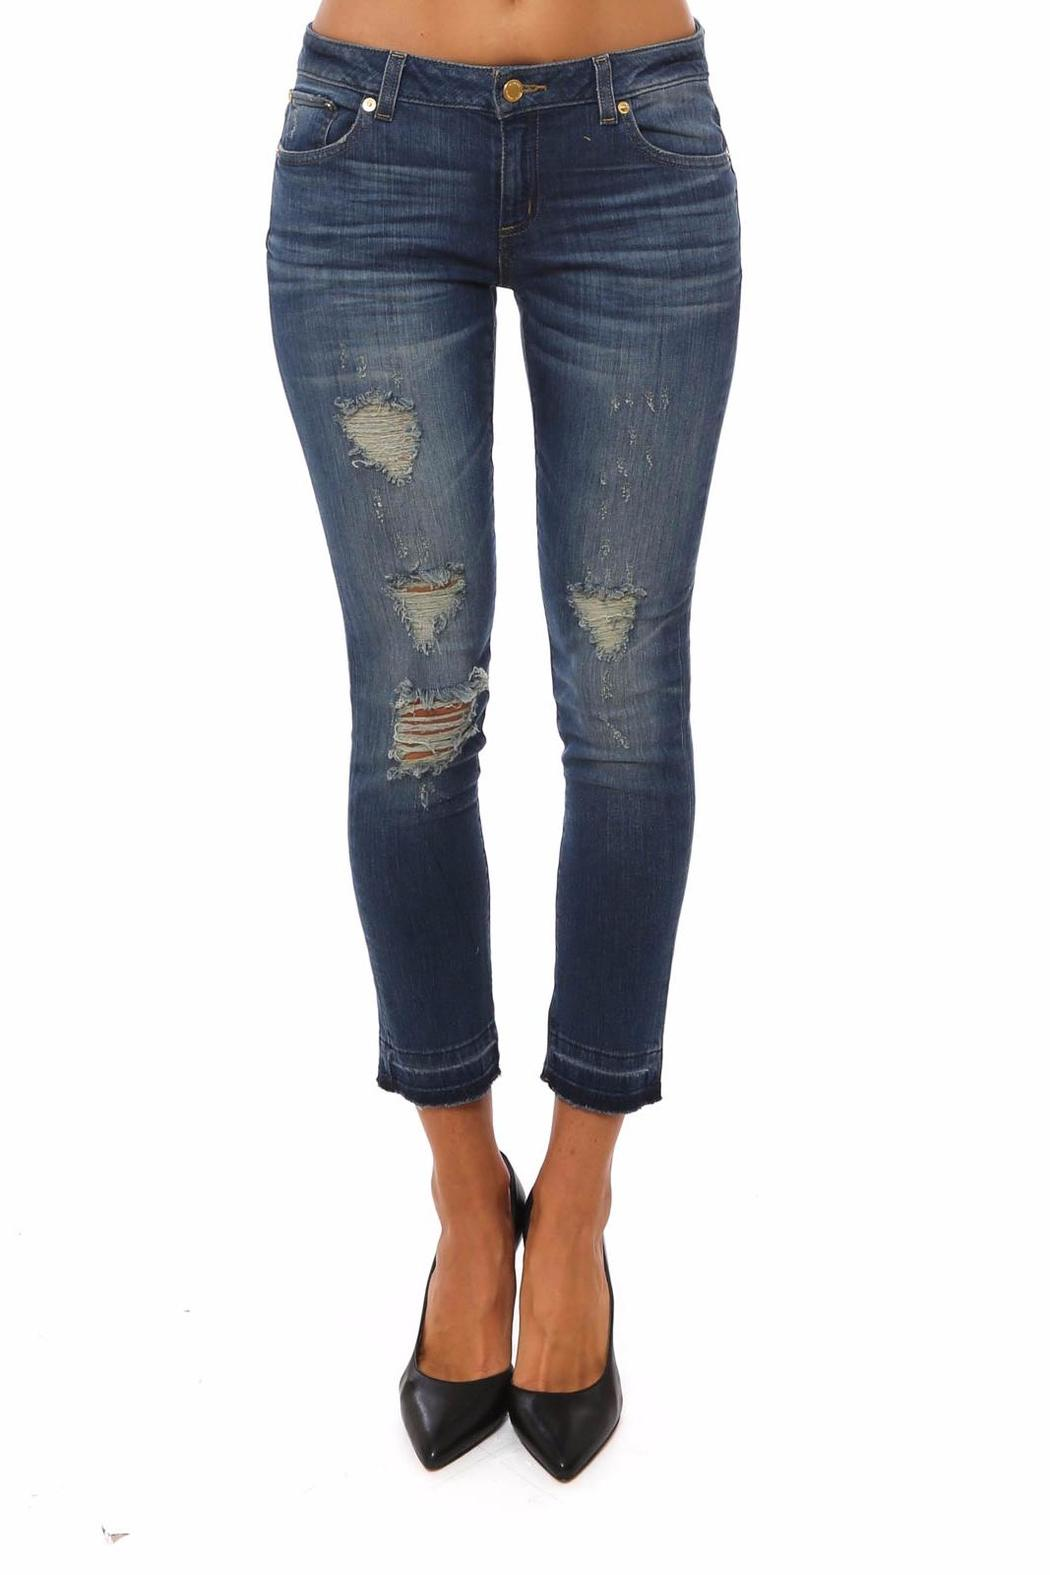 880ad94854e3 Michael by Michael Kors Izzy Cropped Distressed Jeans - Front Cropped Image